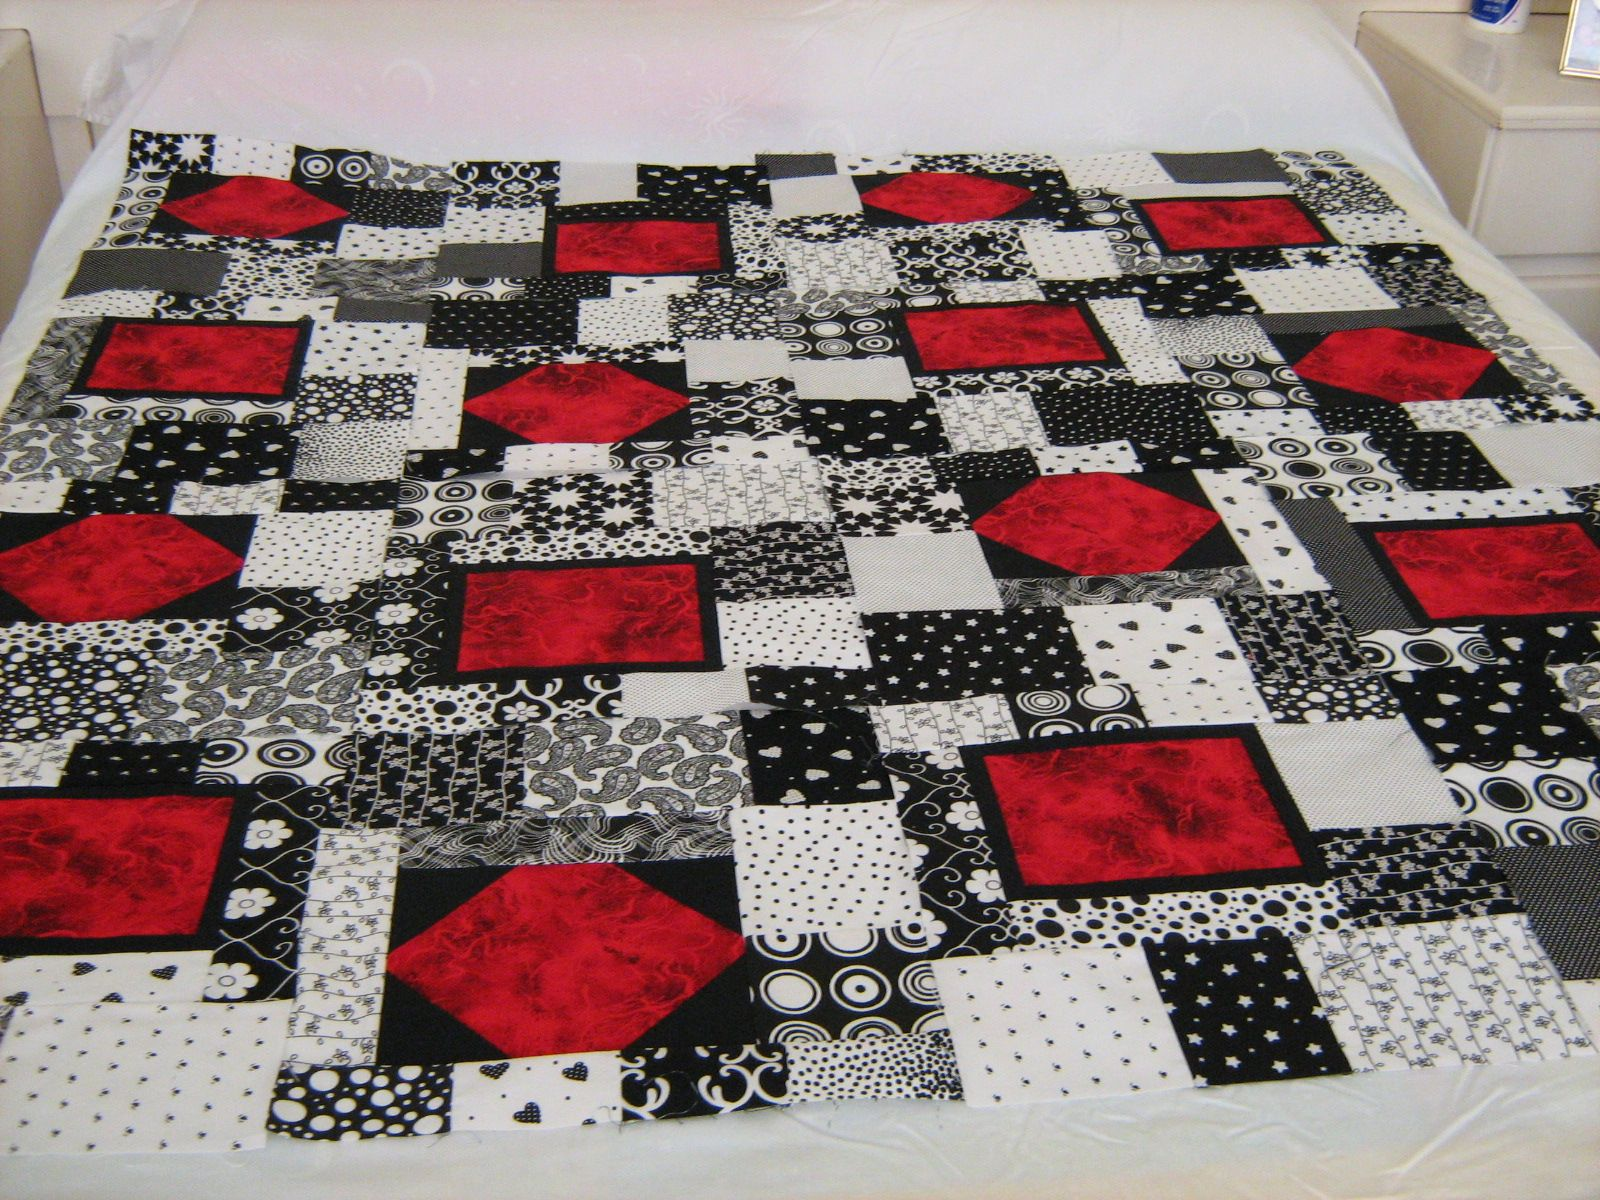 Thread Black White And Red Quilt She Posted A Drawing Of The Blocks Used In Layout But Didn T Have Pattern Turned Out Quite Well